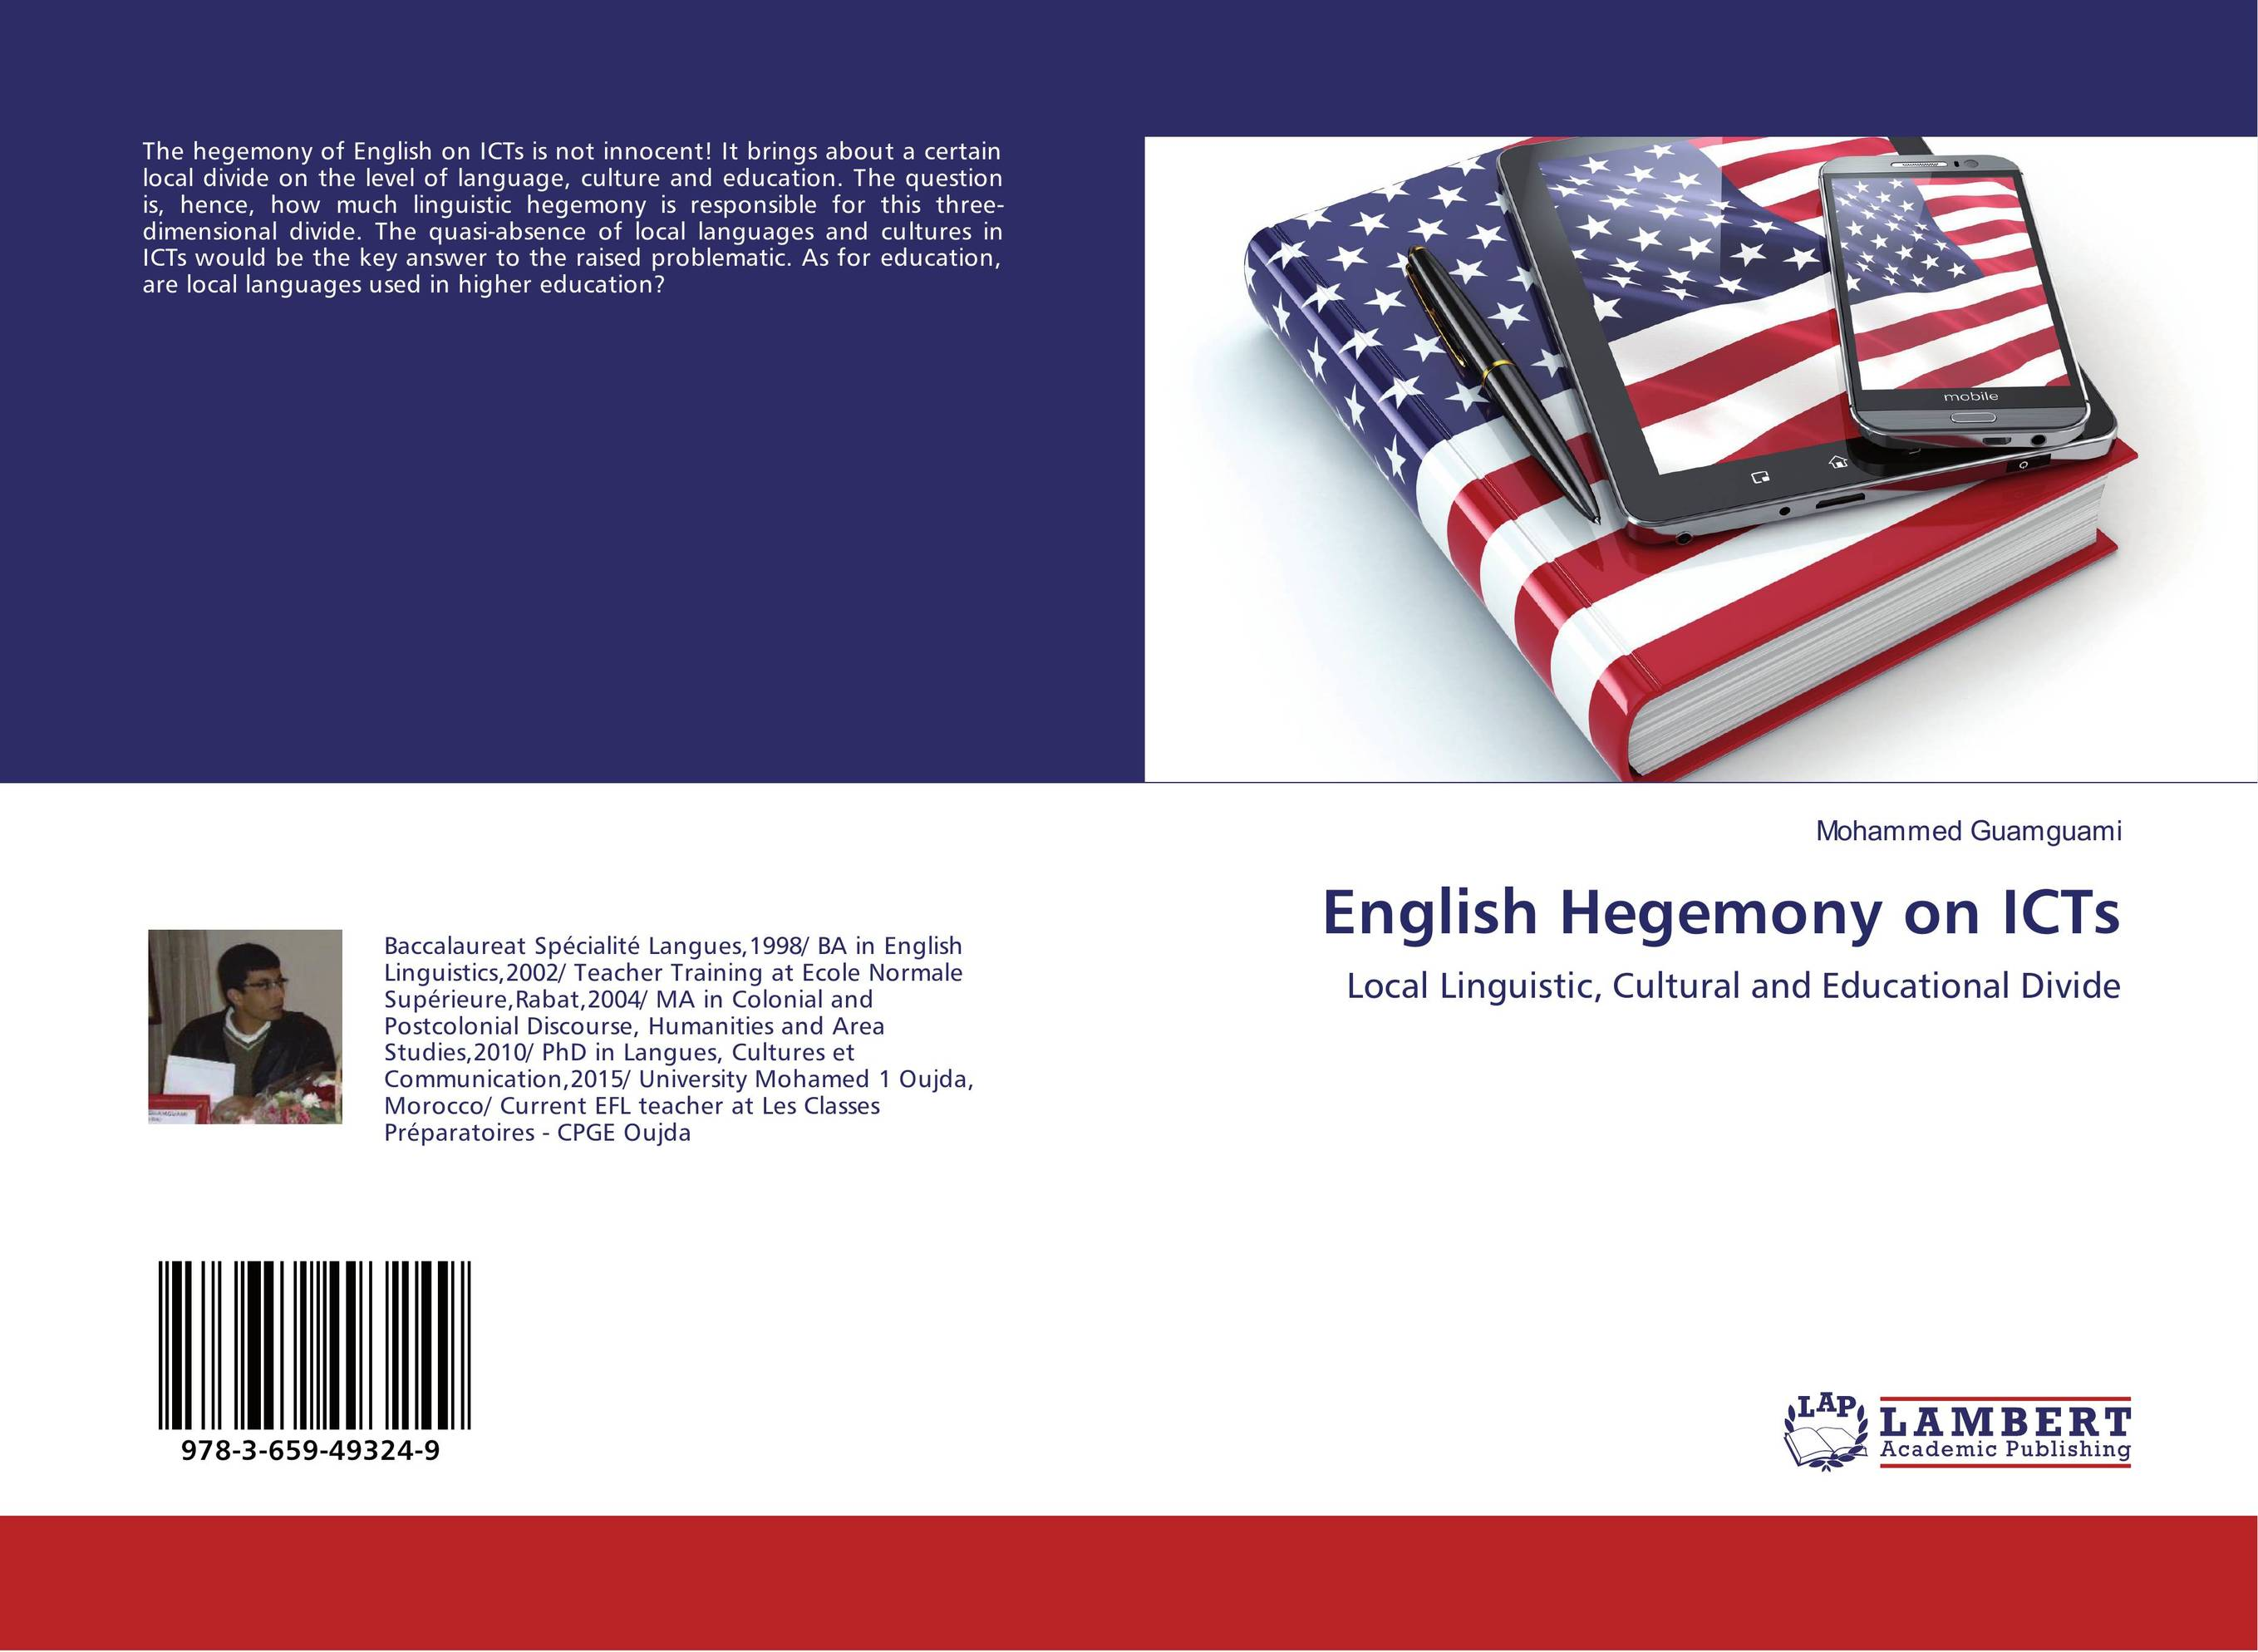 English Hegemony on ICTs the states and public higher education policy